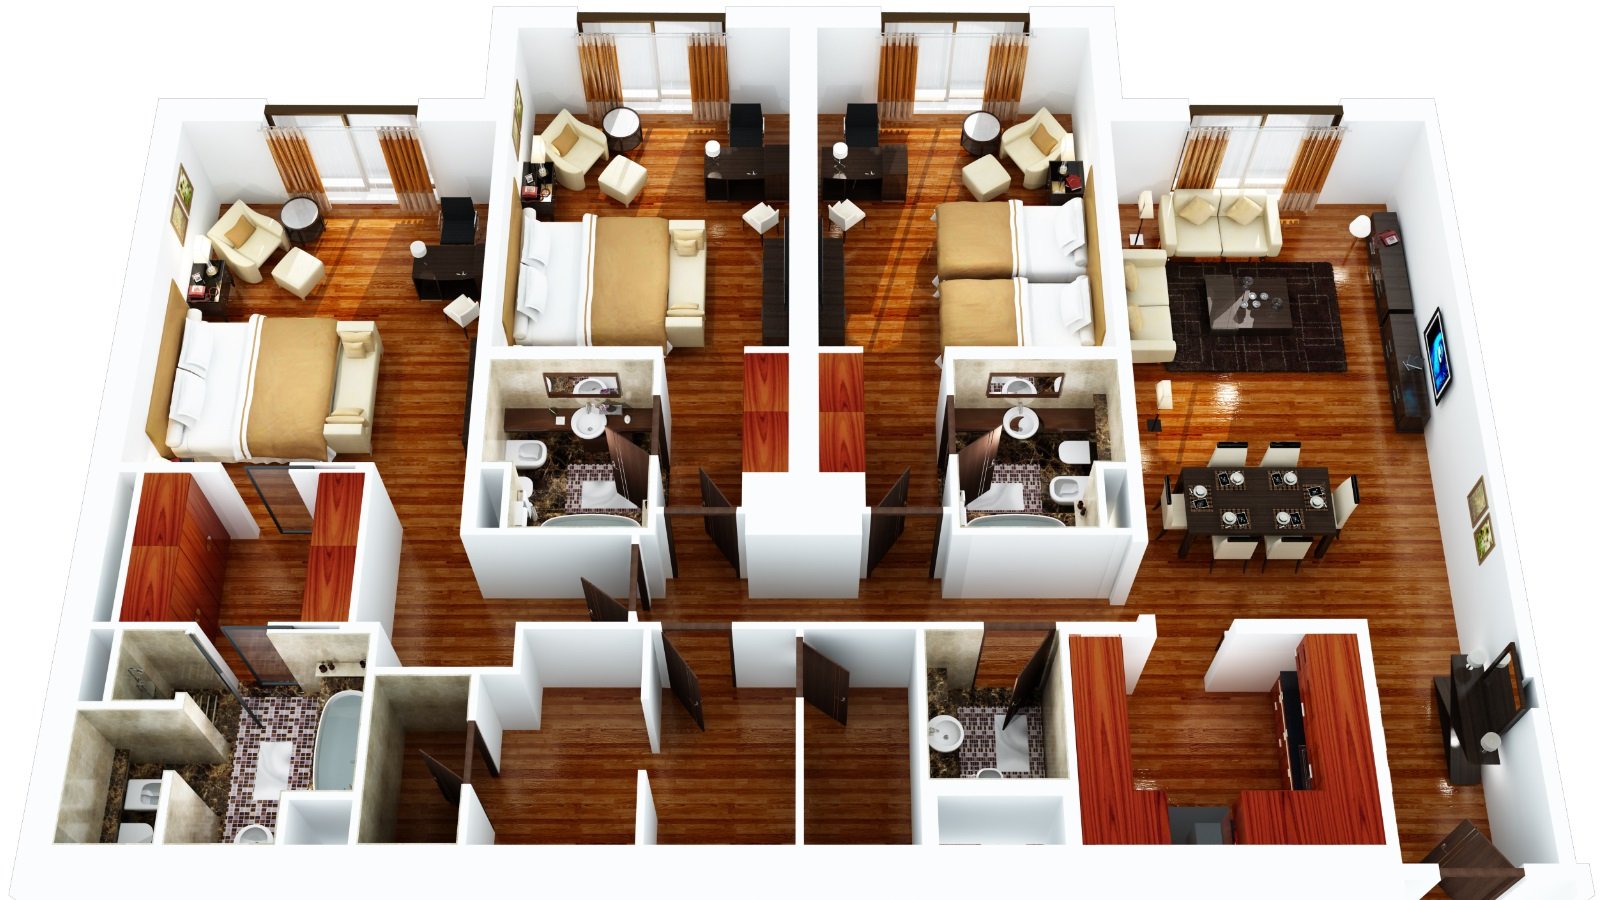 Grosvenor house dubai 2 bedroom residence apartments for Three bed